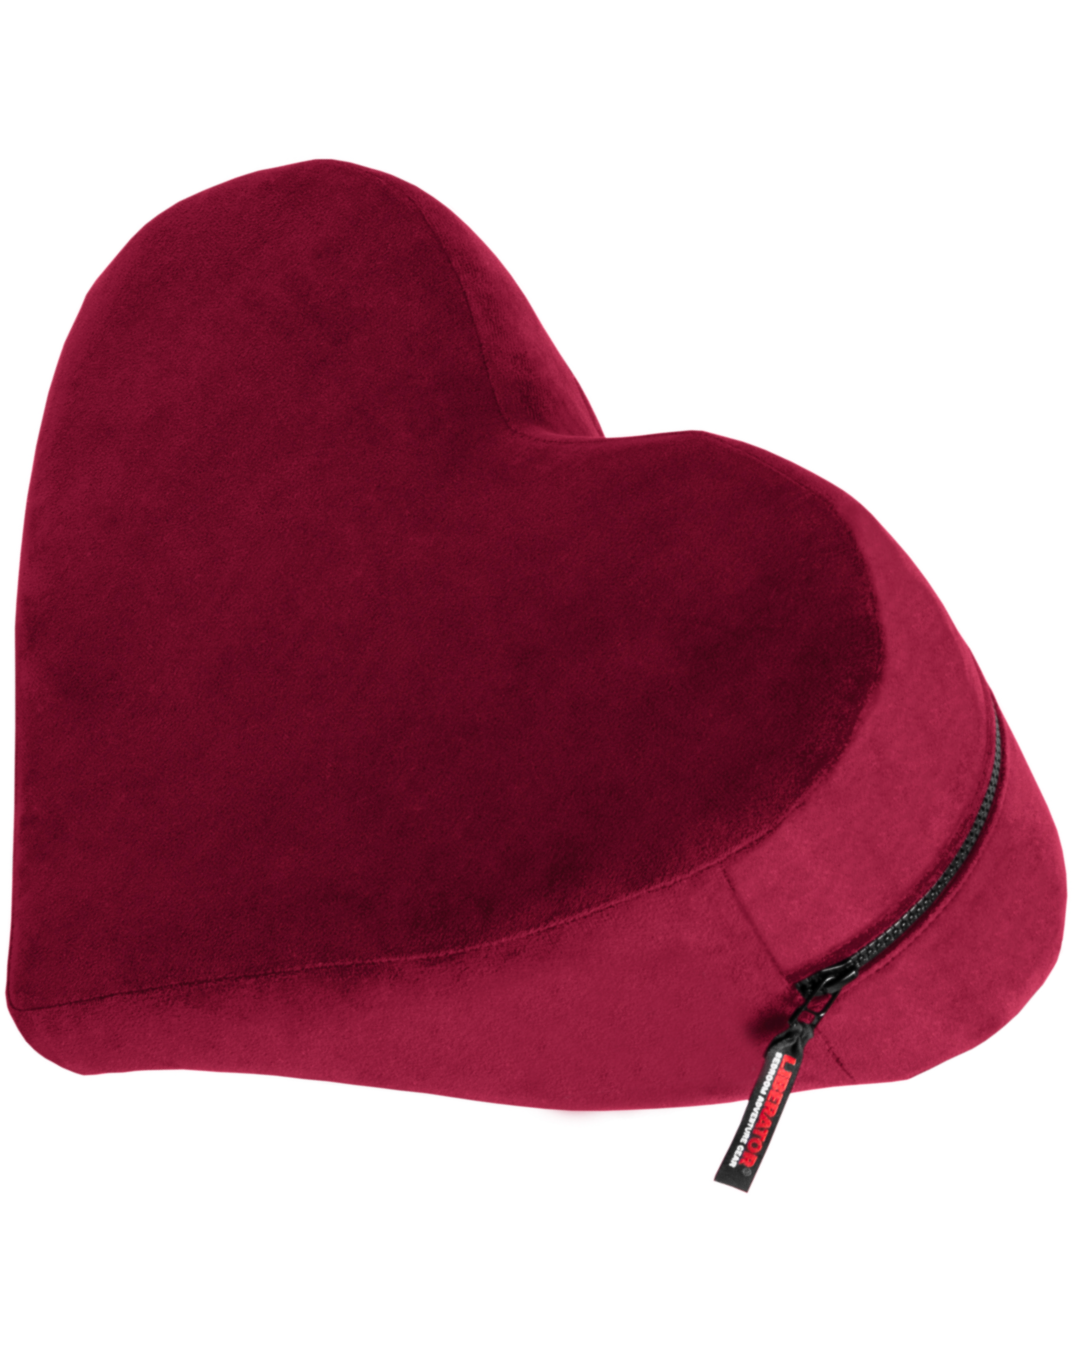 Liberator Decor Heart Wedge Sex Positioning Cushion - Assorted Colors merlot